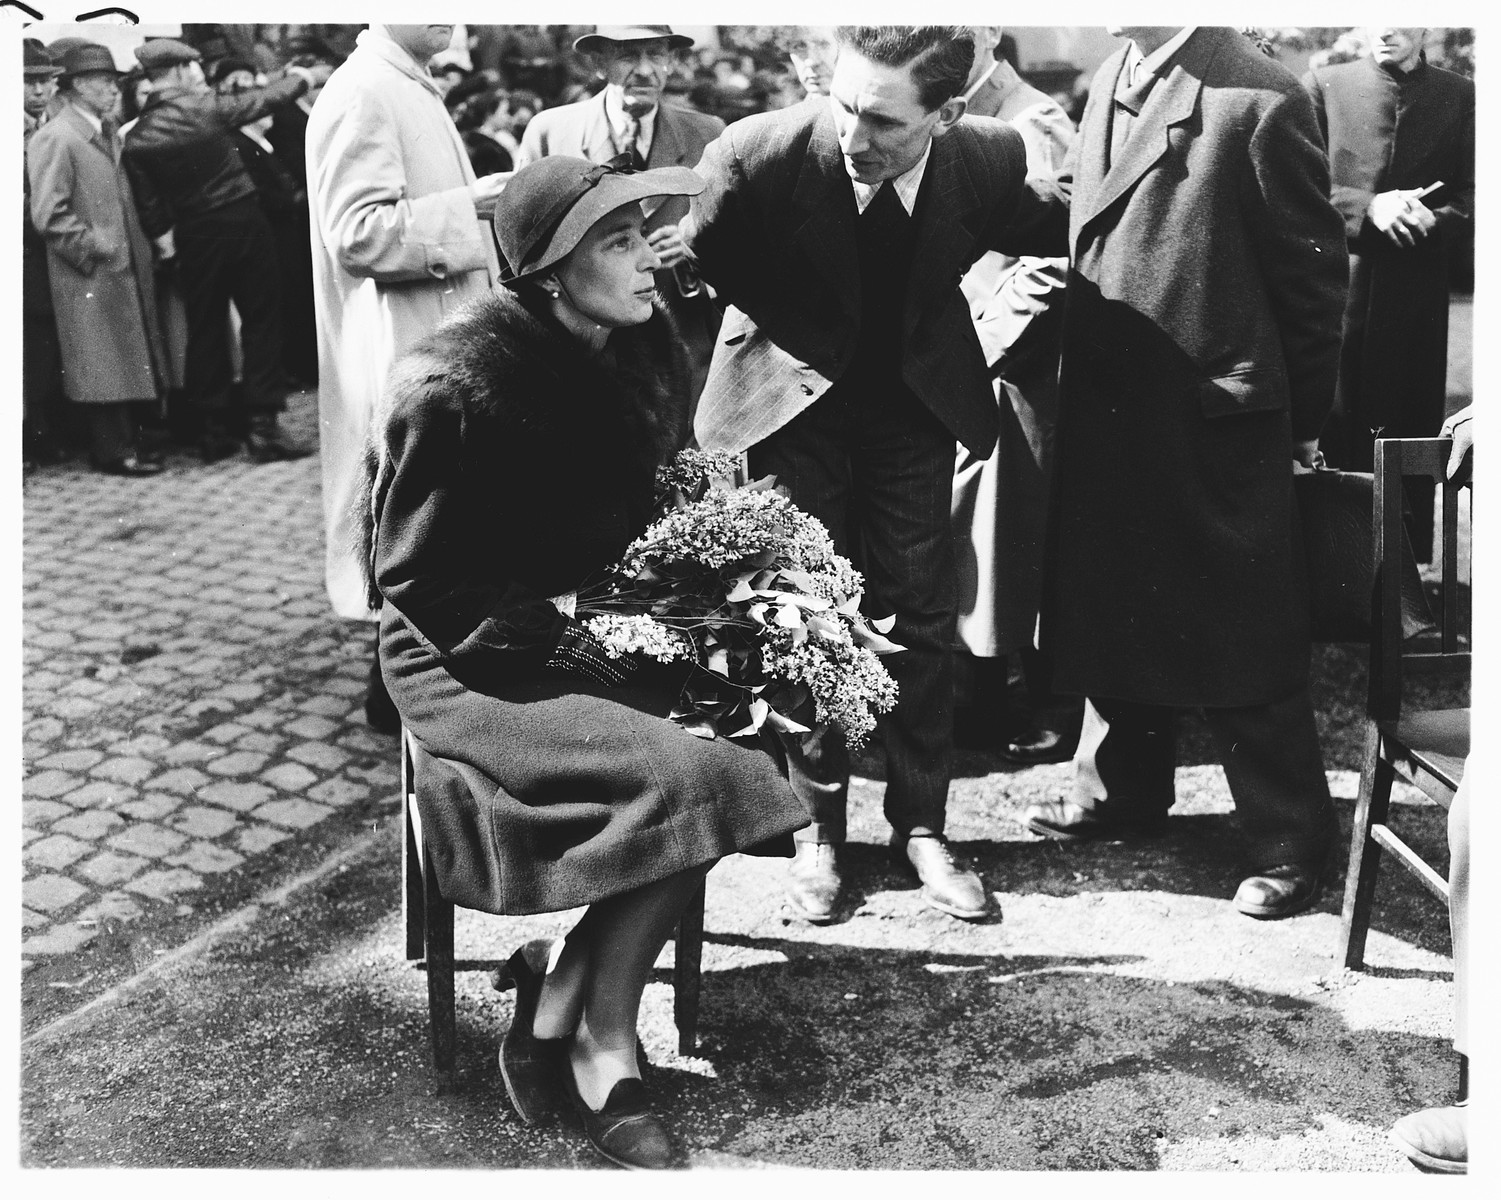 A woman bearing flowers attends the funeral and reburial of 71 political prisoners, exhumed from a mass grave near Solingen-Ohligs, in front of the city hall.    The victims, most of whom were taken from Luettringhausen prison, were shot and buried by the Gestapo following orders to eliminate all Reich enemies just before the end of the war.